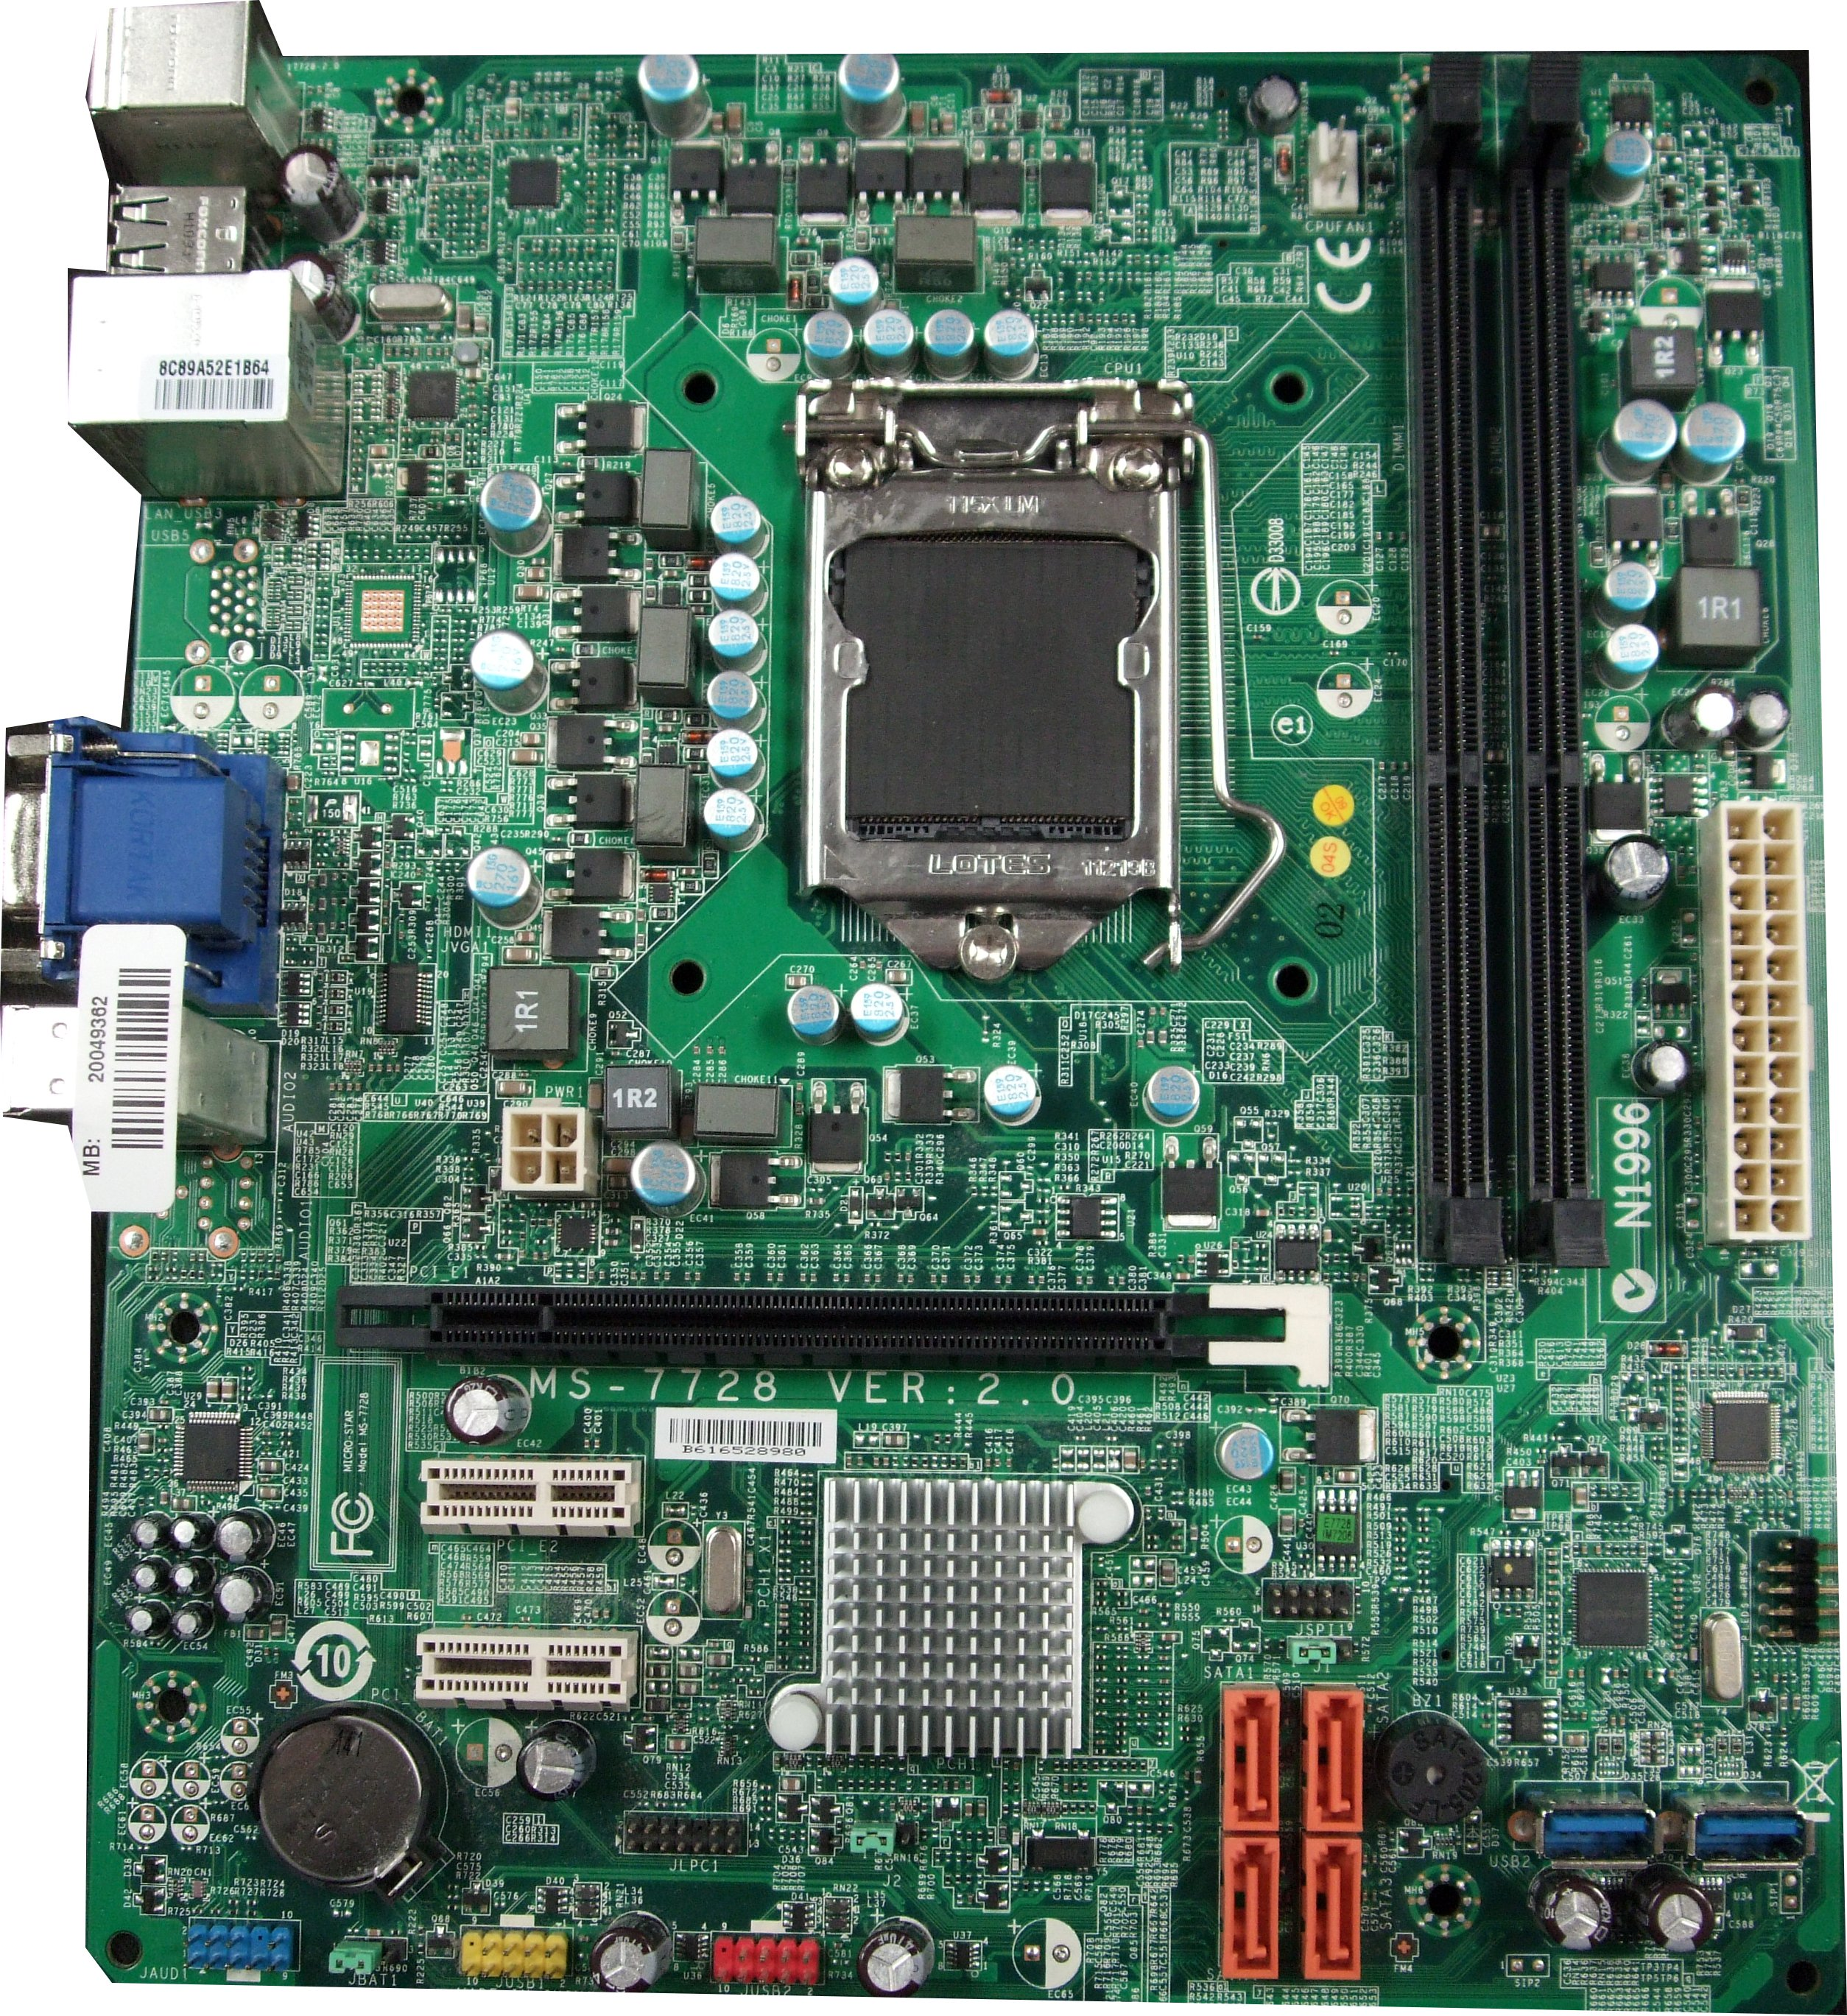 MS-7728 MSI LGA1155 Sandybridge Motherboard (/w VGA Socket) - Advent Branded